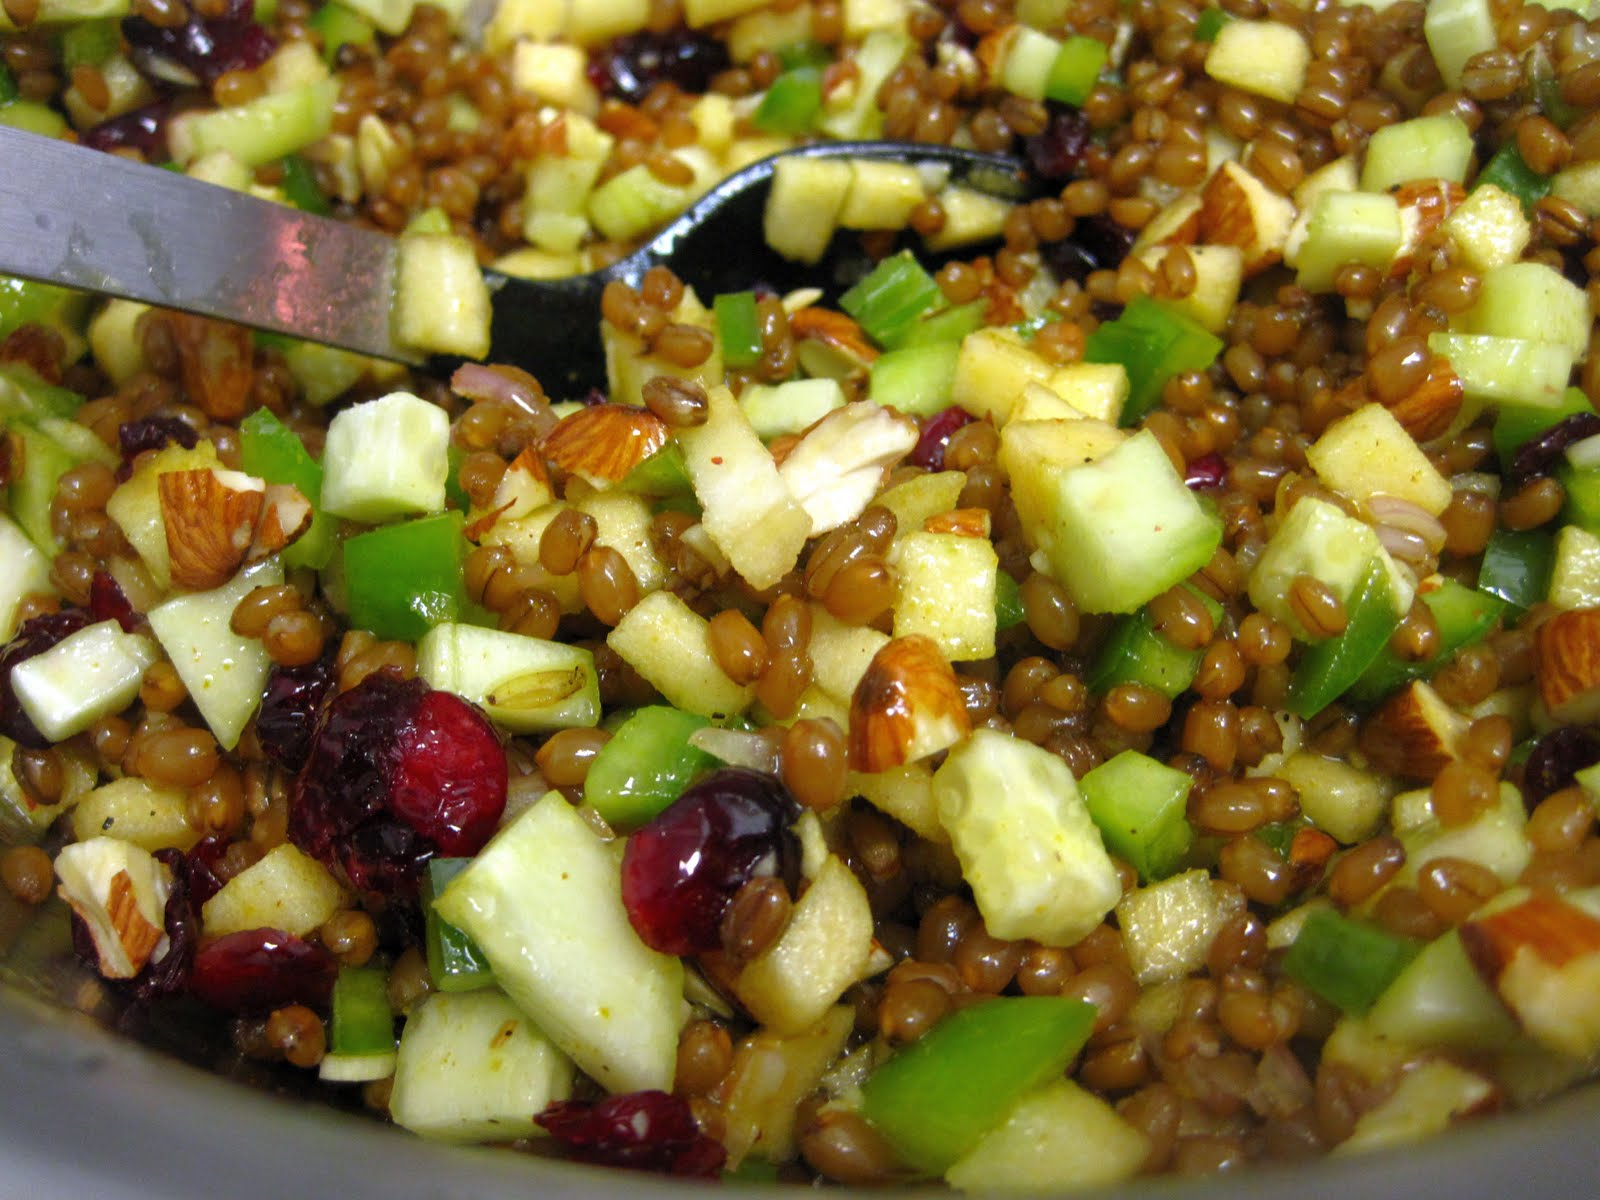 ... berry salad greek wheat berry salad feta wheat berry salad the wheat